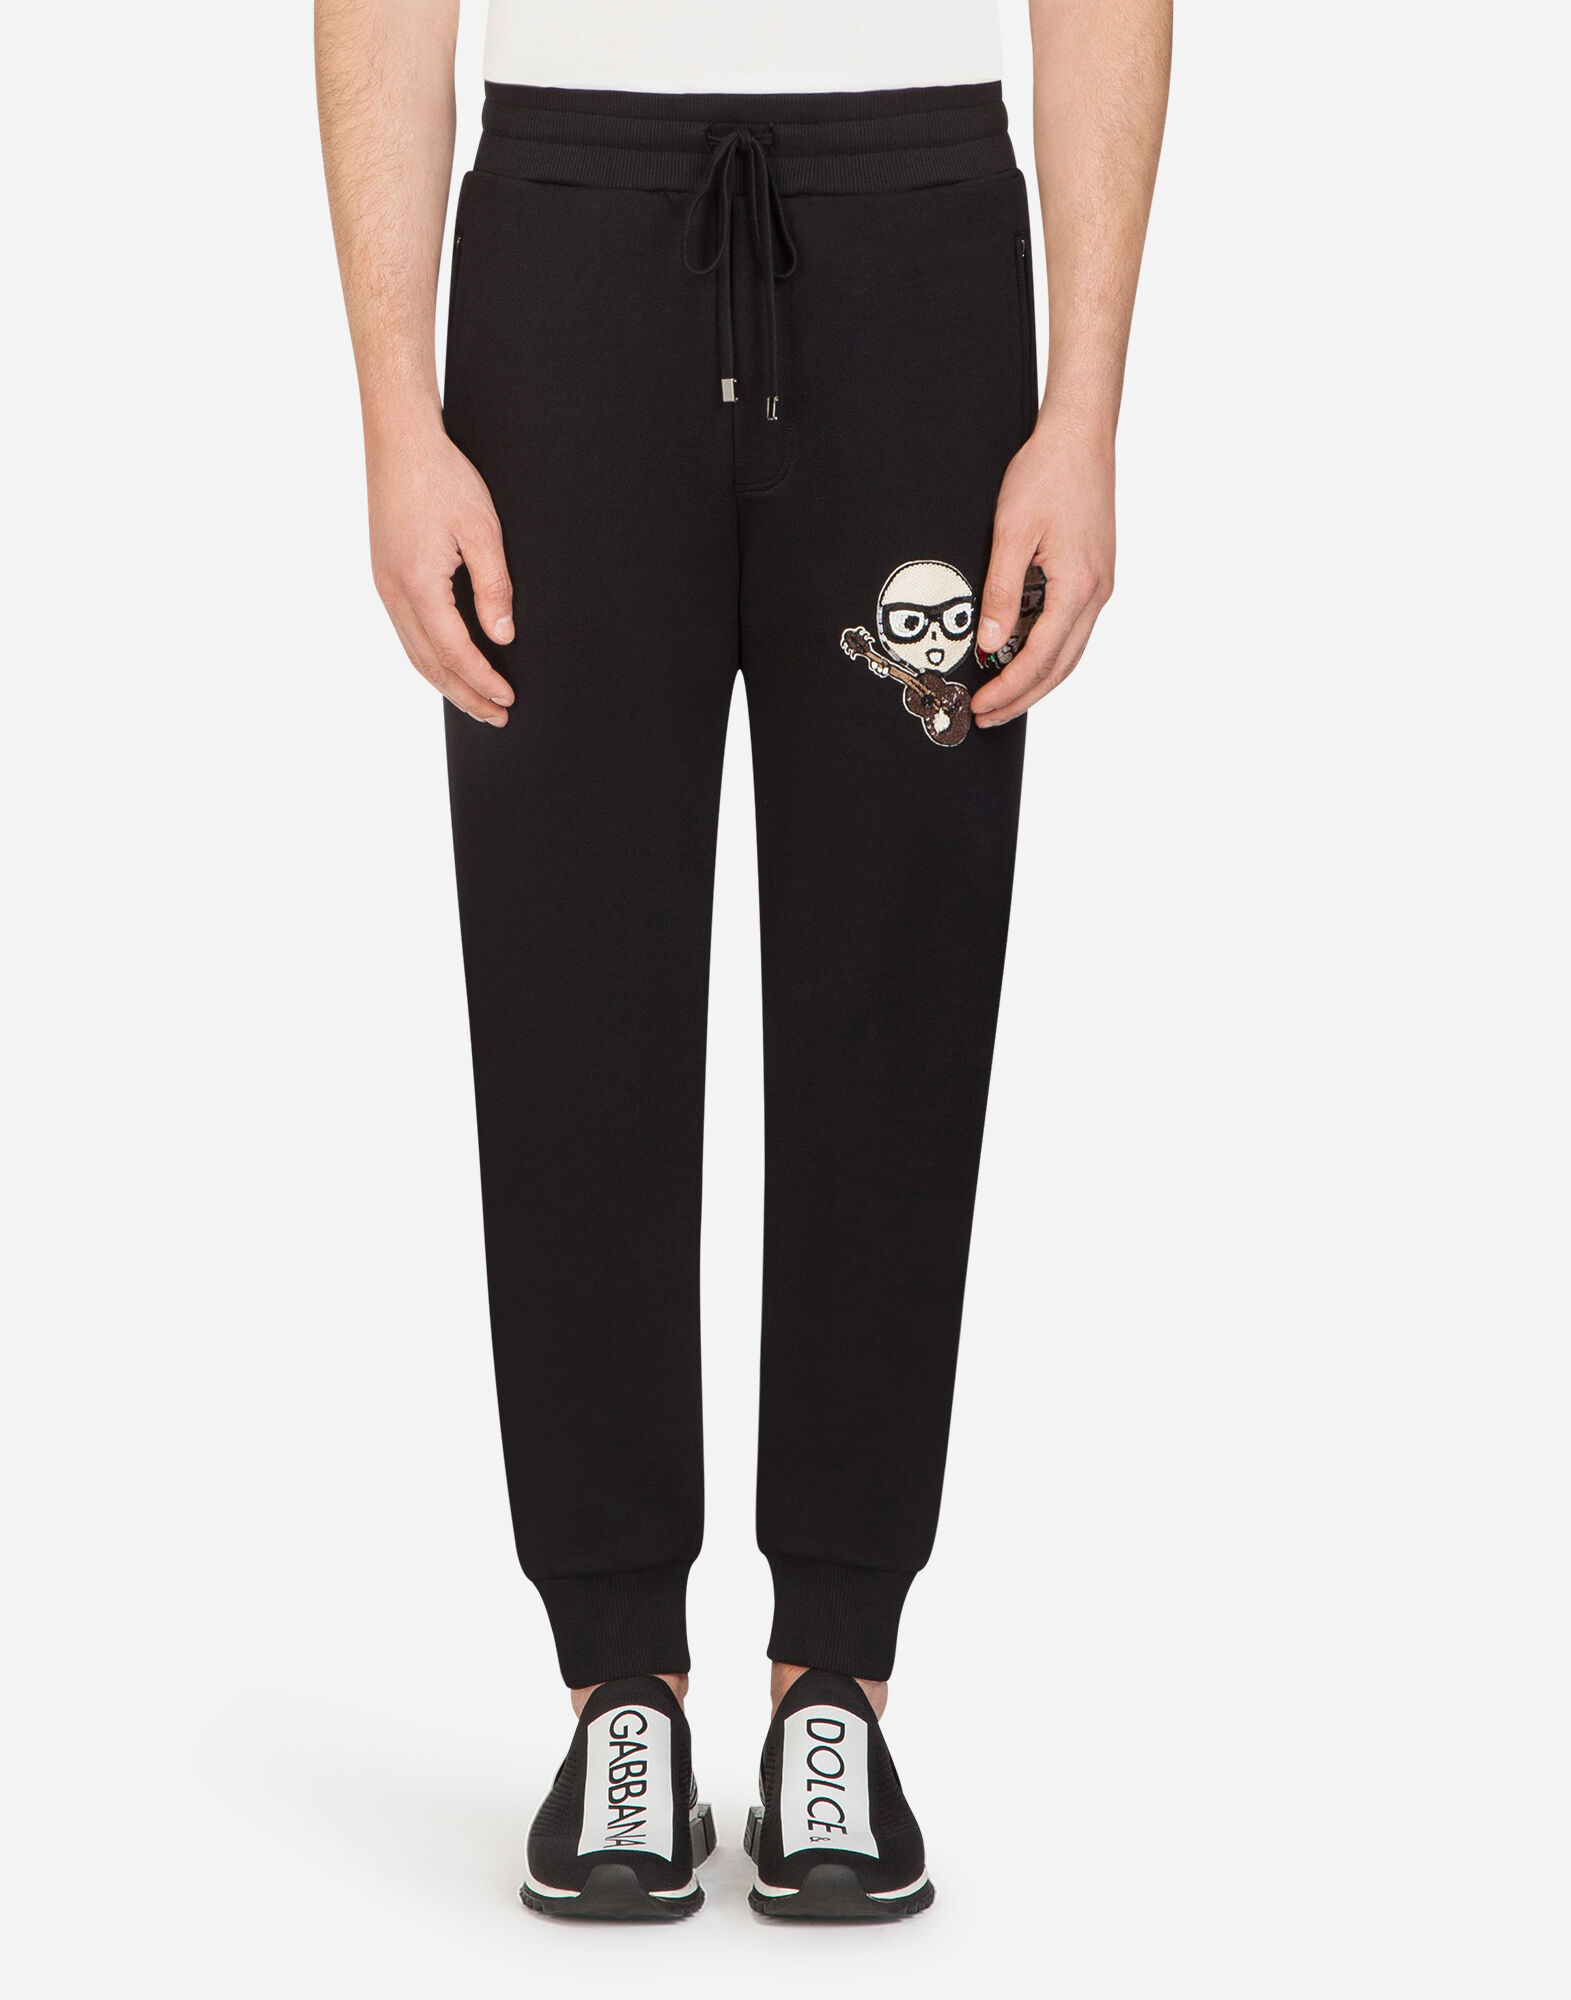 COTTON JOGGING PANTS WITH DESIGNERS' PATCHES from DOLCE & GABBANA